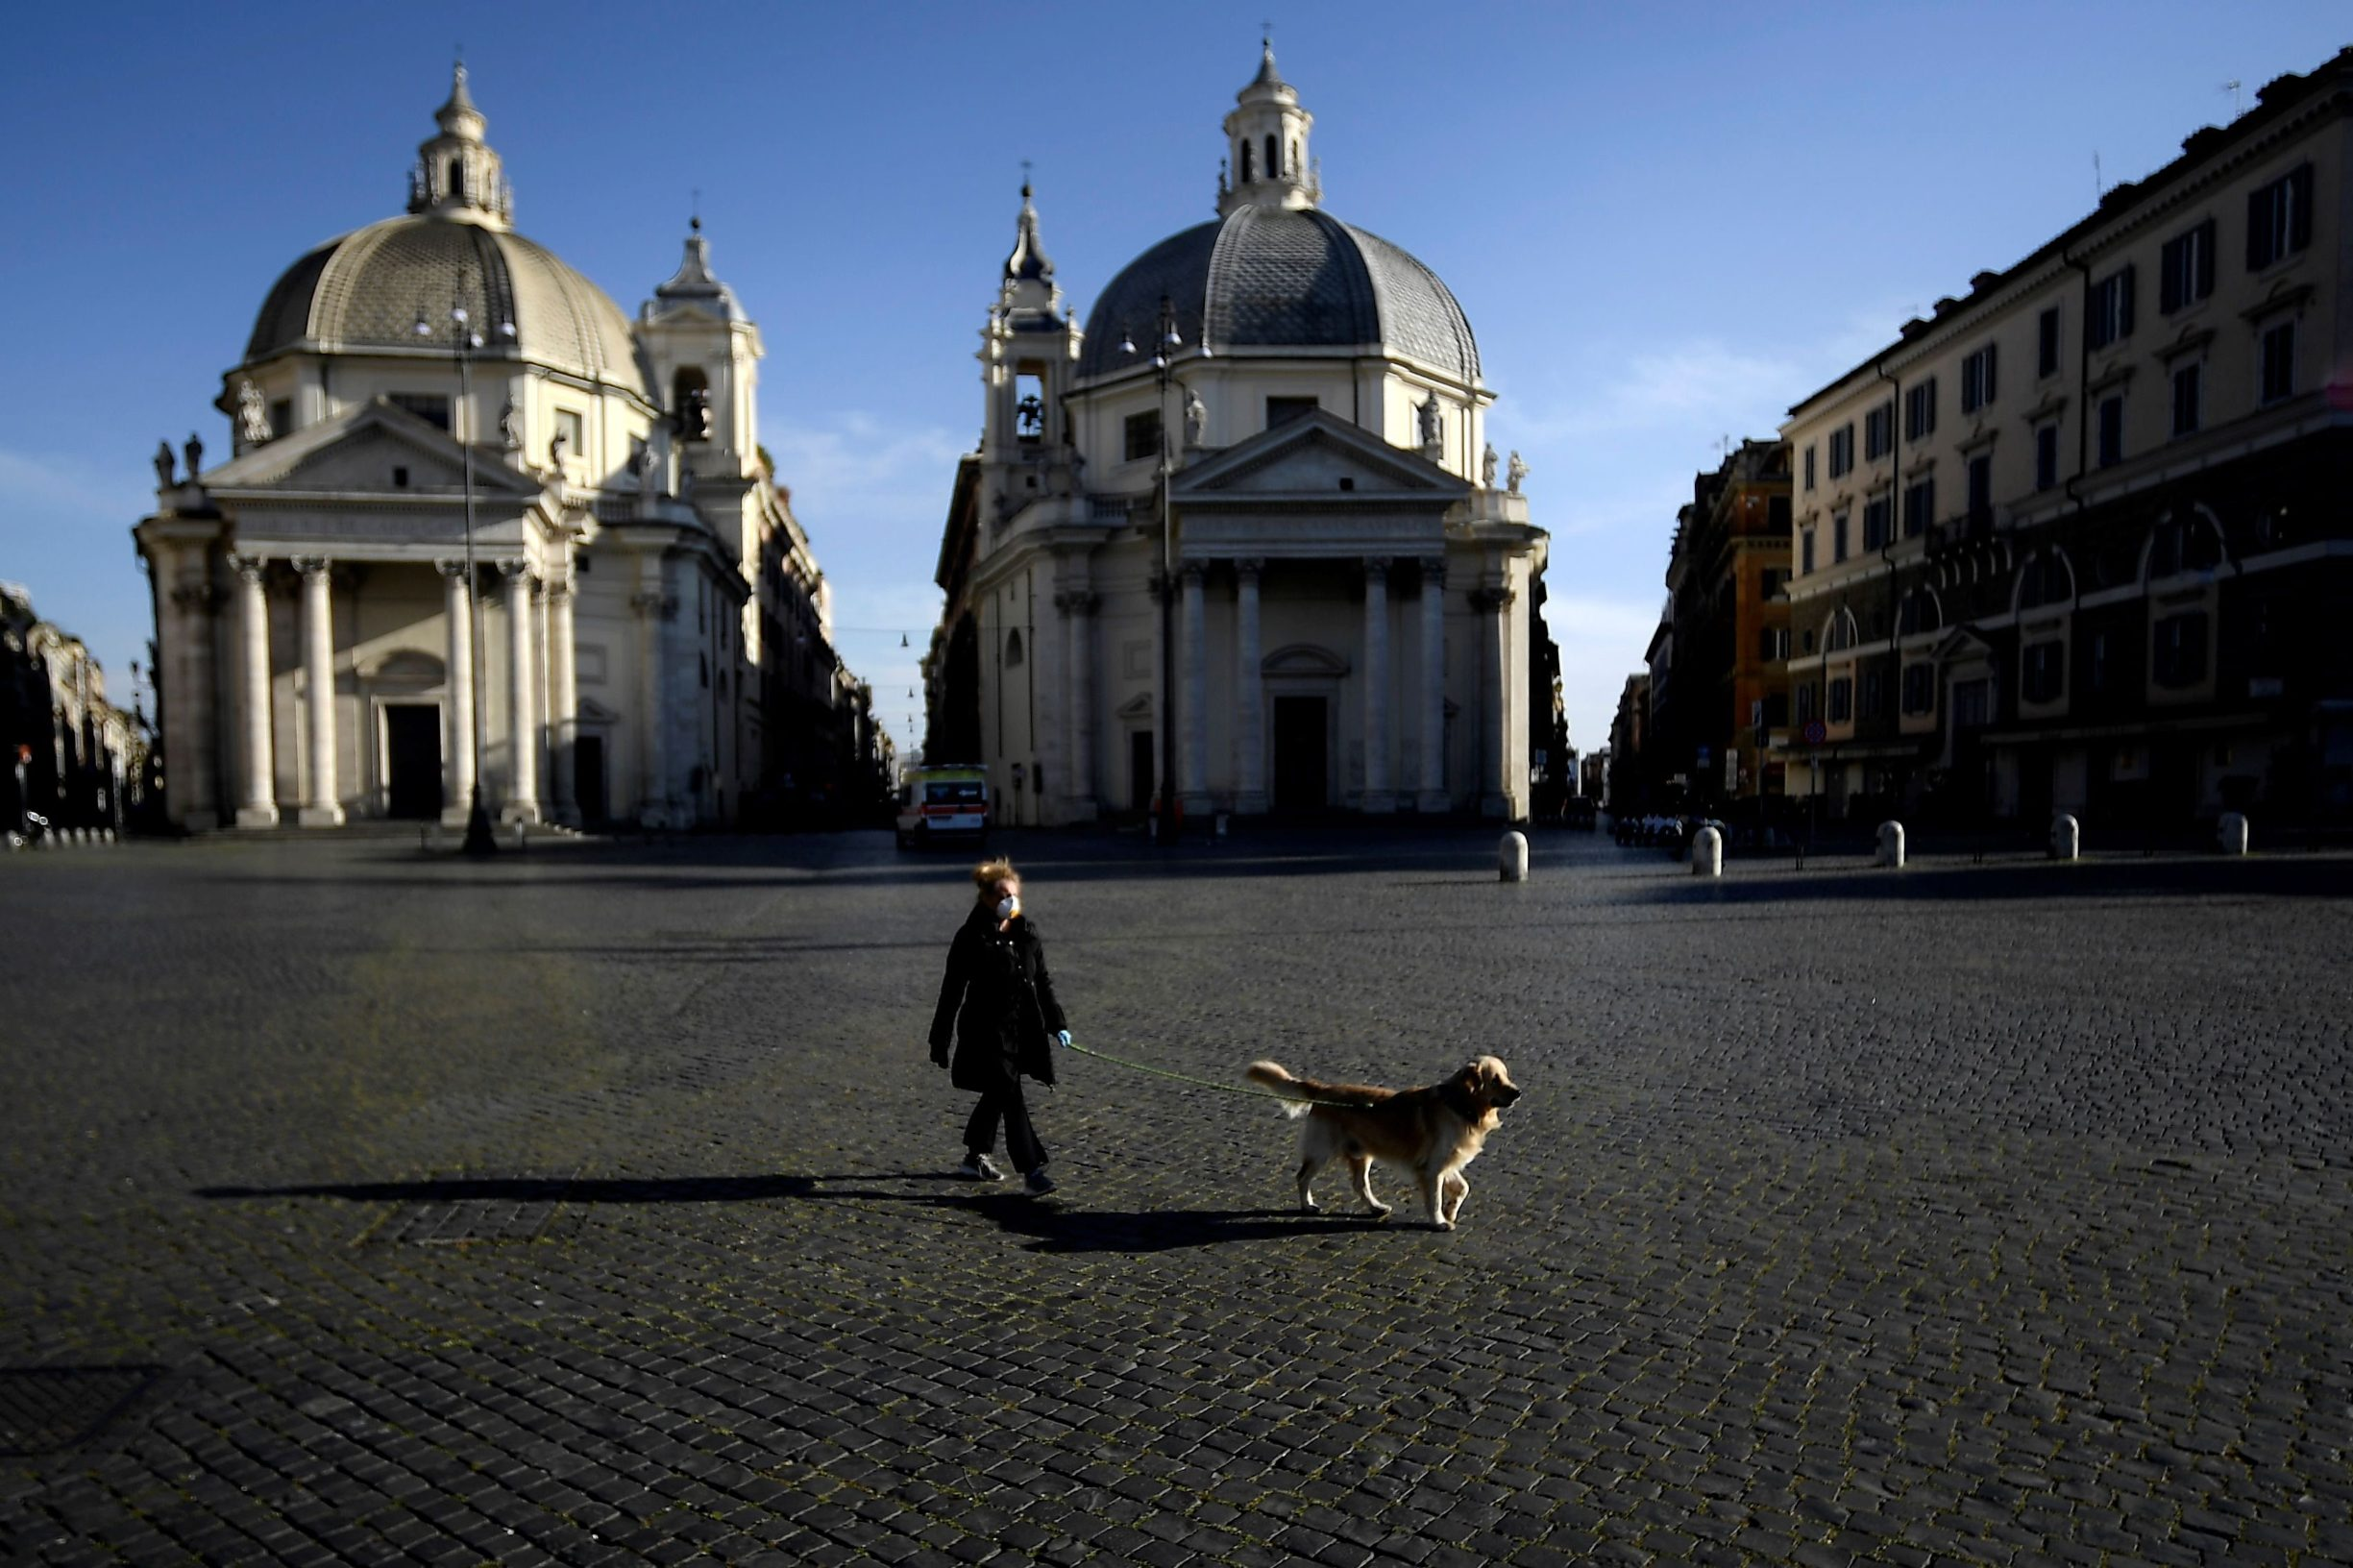 A woman takes her dog out in Piazza del Popolo on April 2, 2020 in Rome, during the country's lockdown aimed at curbing the spread of the COVID-19 infection, caused by the novel coronavirus. (Photo by Filippo MONTEFORTE / AFP)